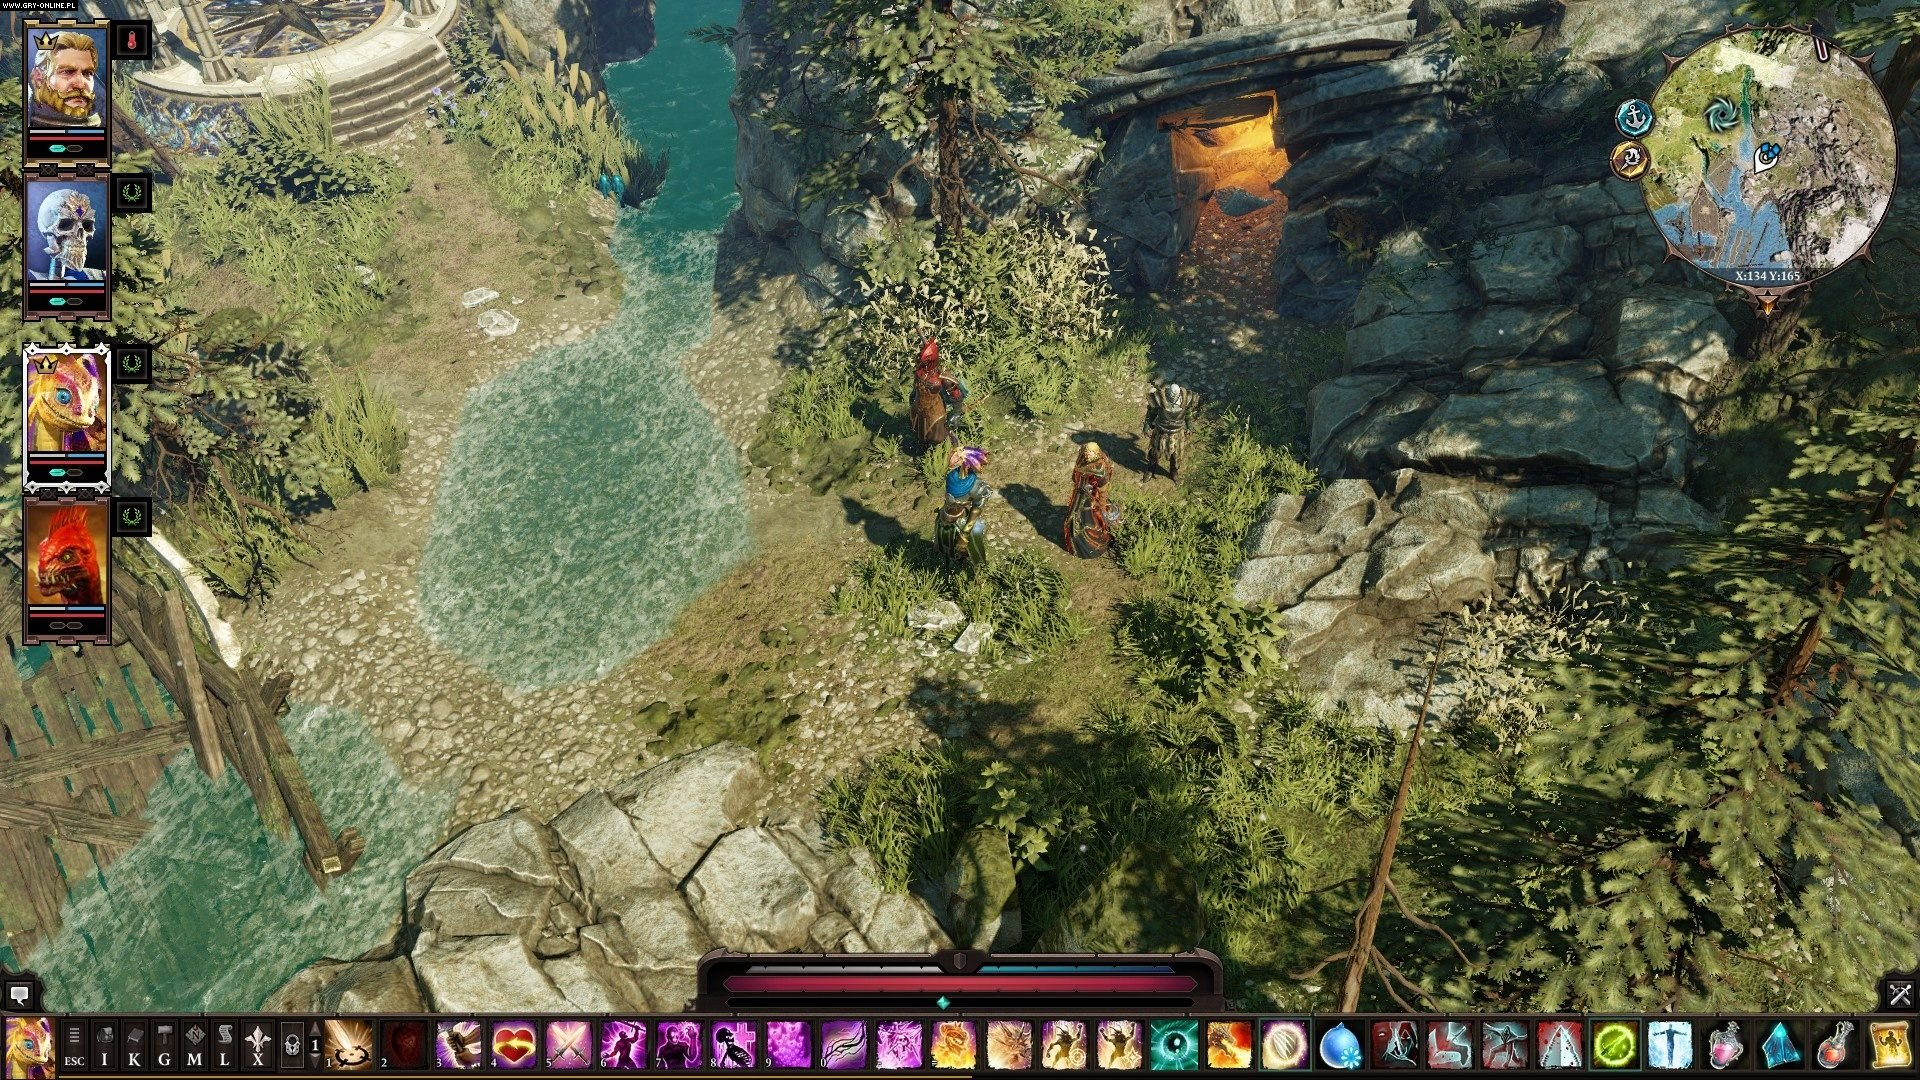 Divinity: Original Sin II - Definitive Edition PC, PS4, XONE Games Image 38/299, Larian Studios